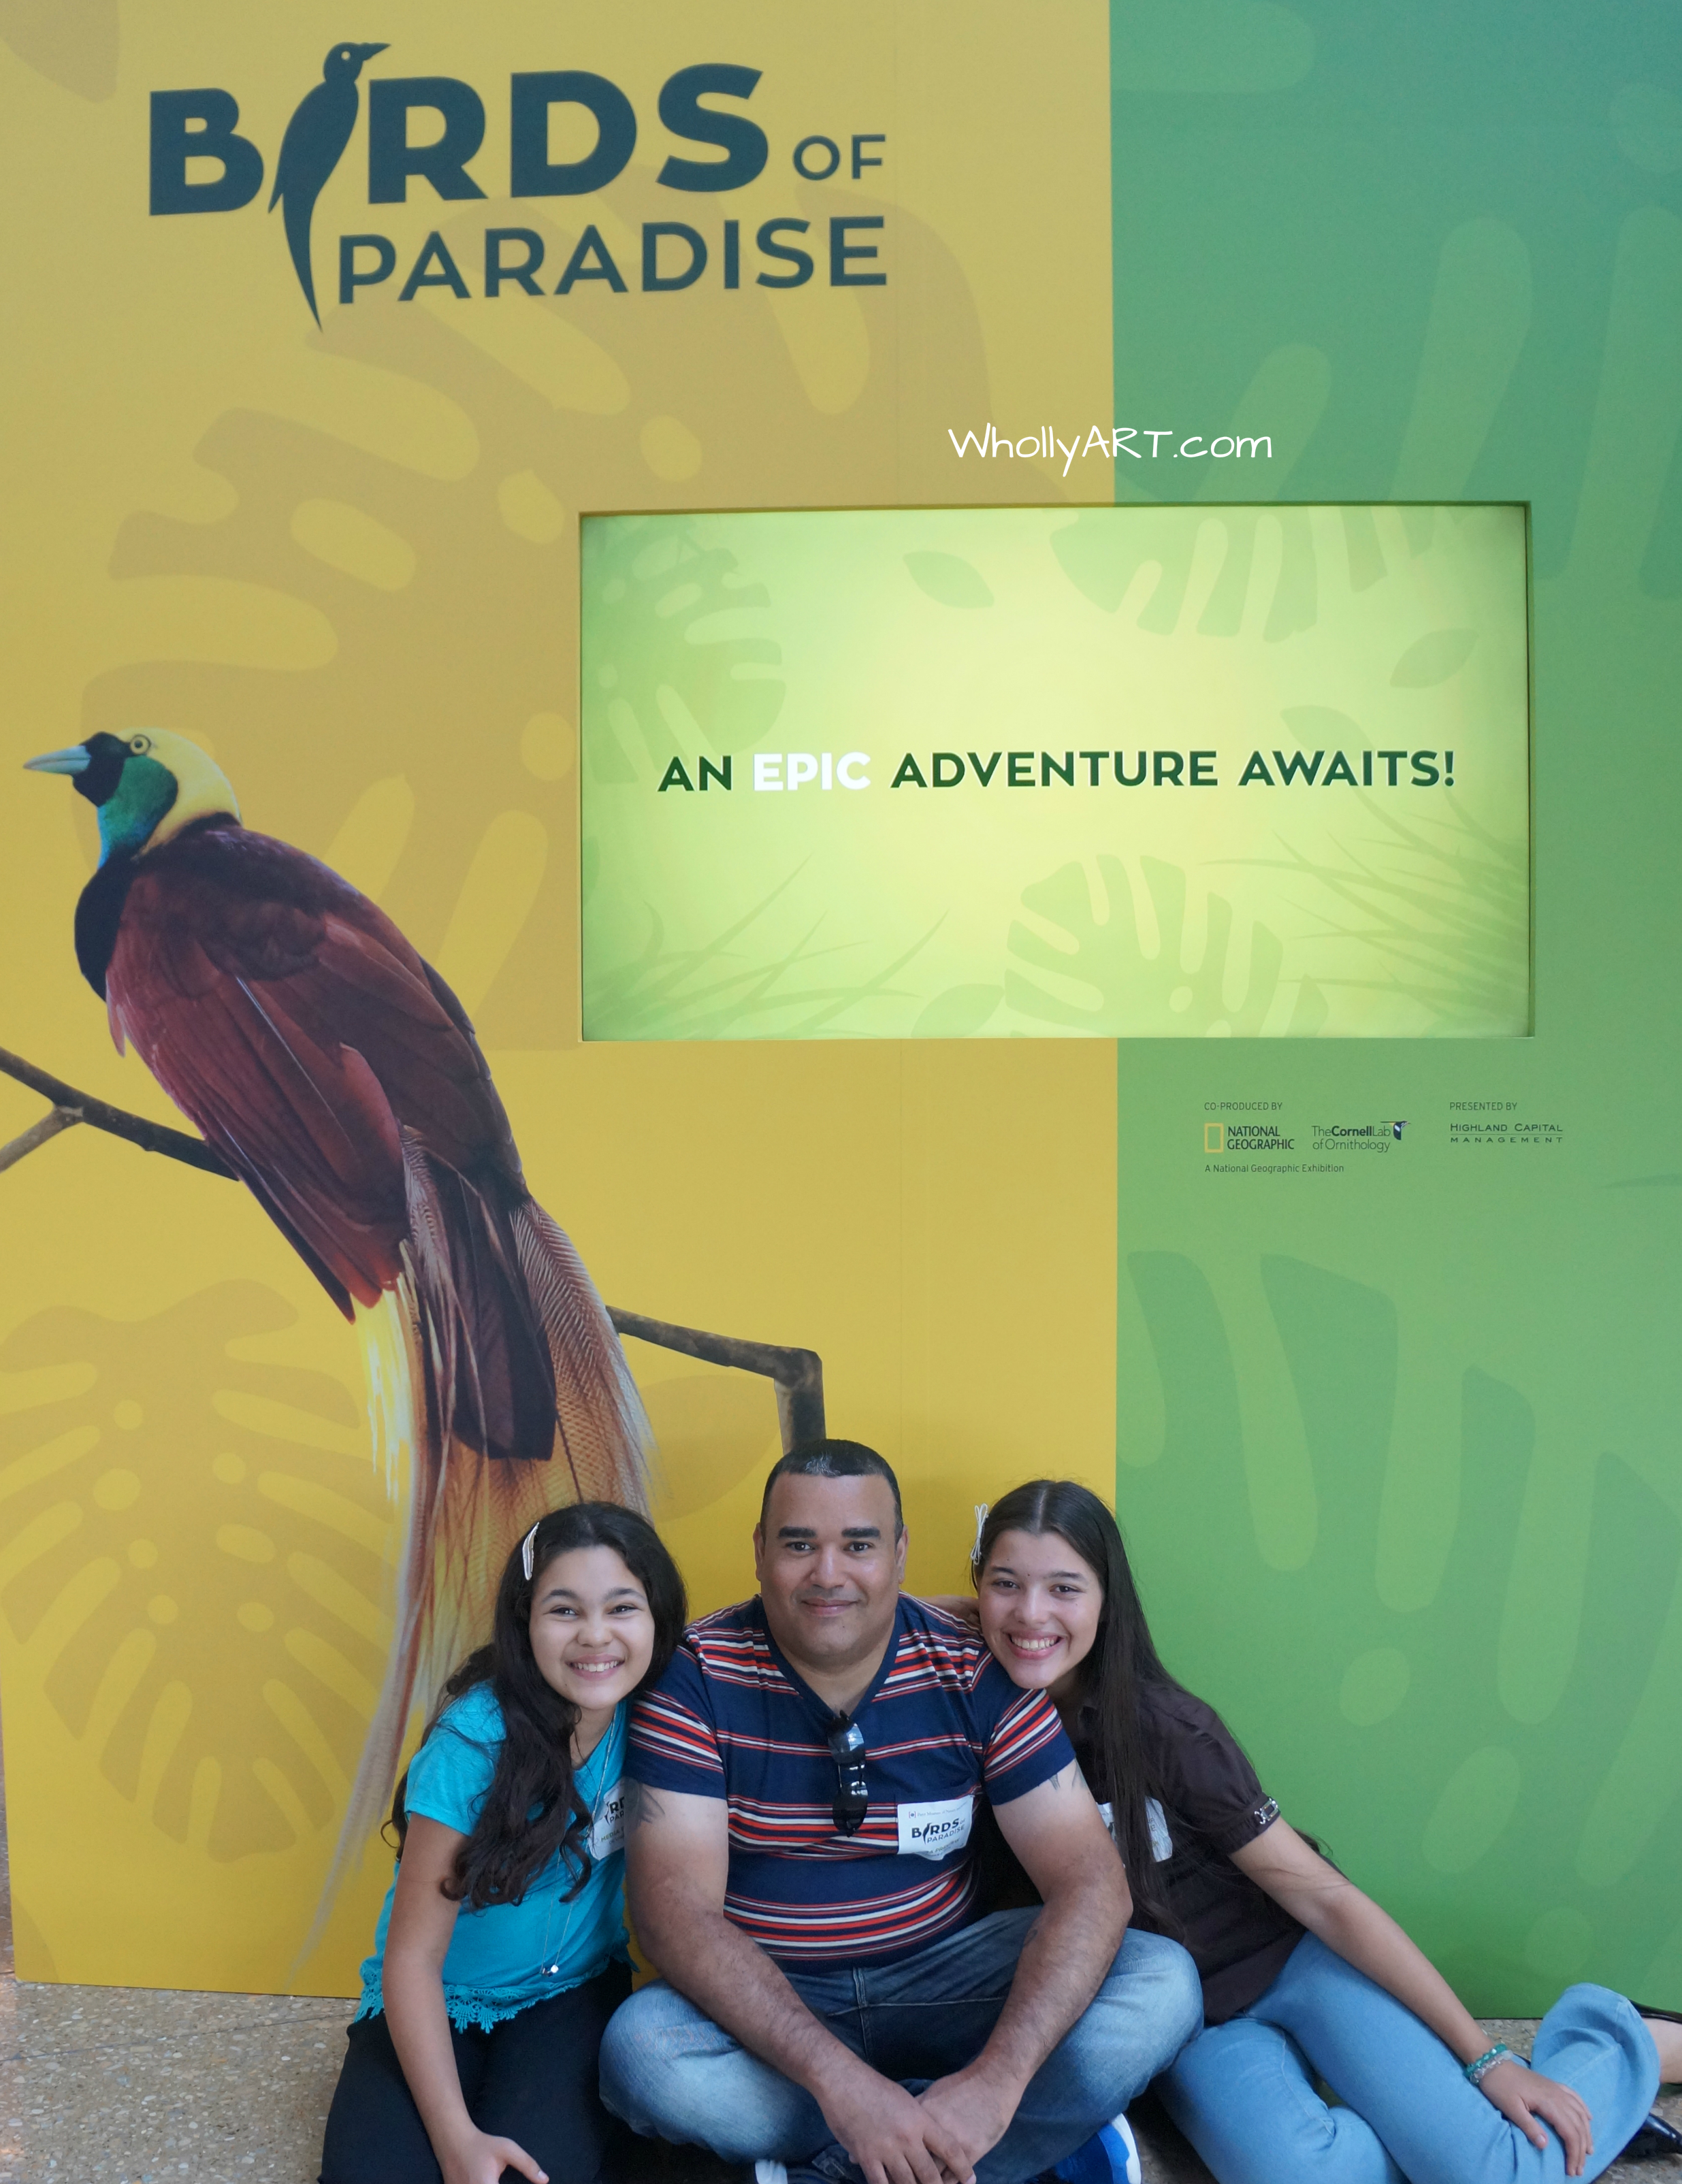 Birds of Paradise at the Perot Museum of Nature and Science - Epic adventure awaits you!